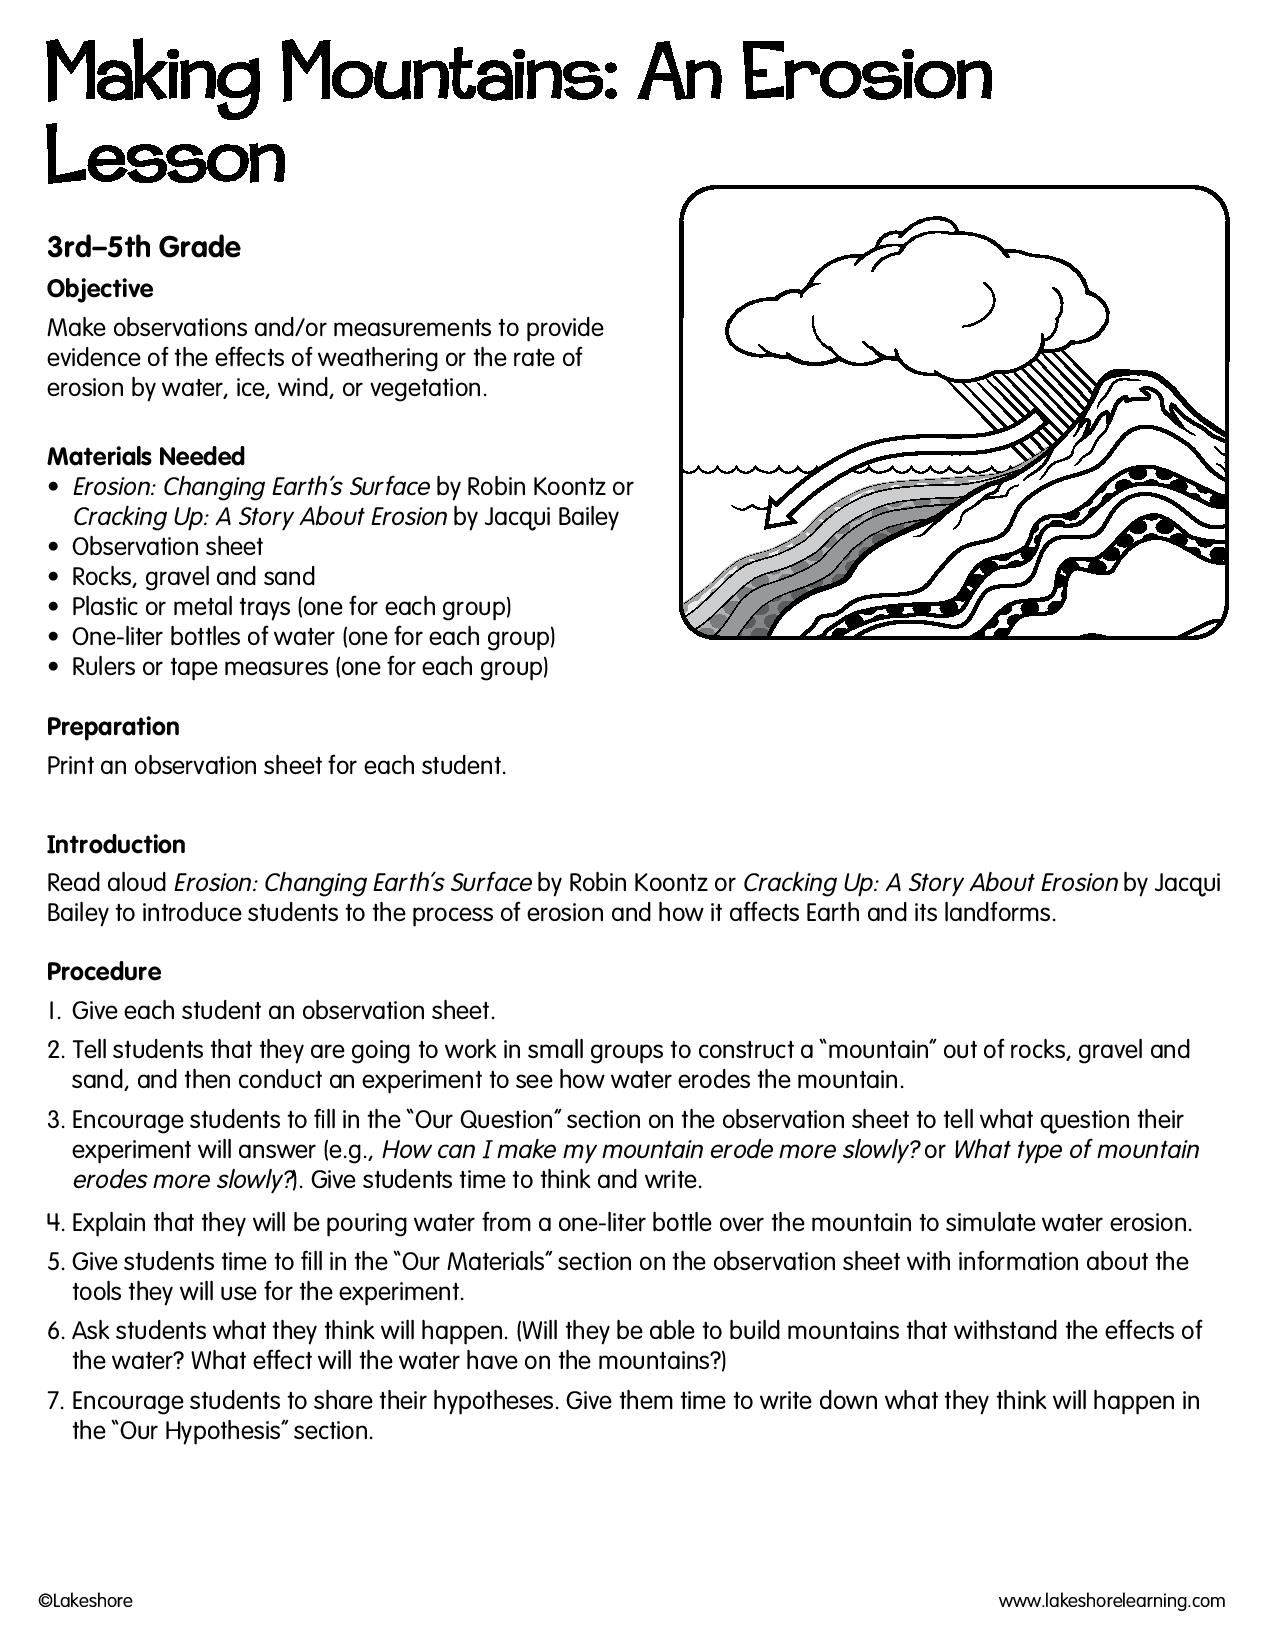 Making Mountains An Erosion Lesson Lessonplan Science